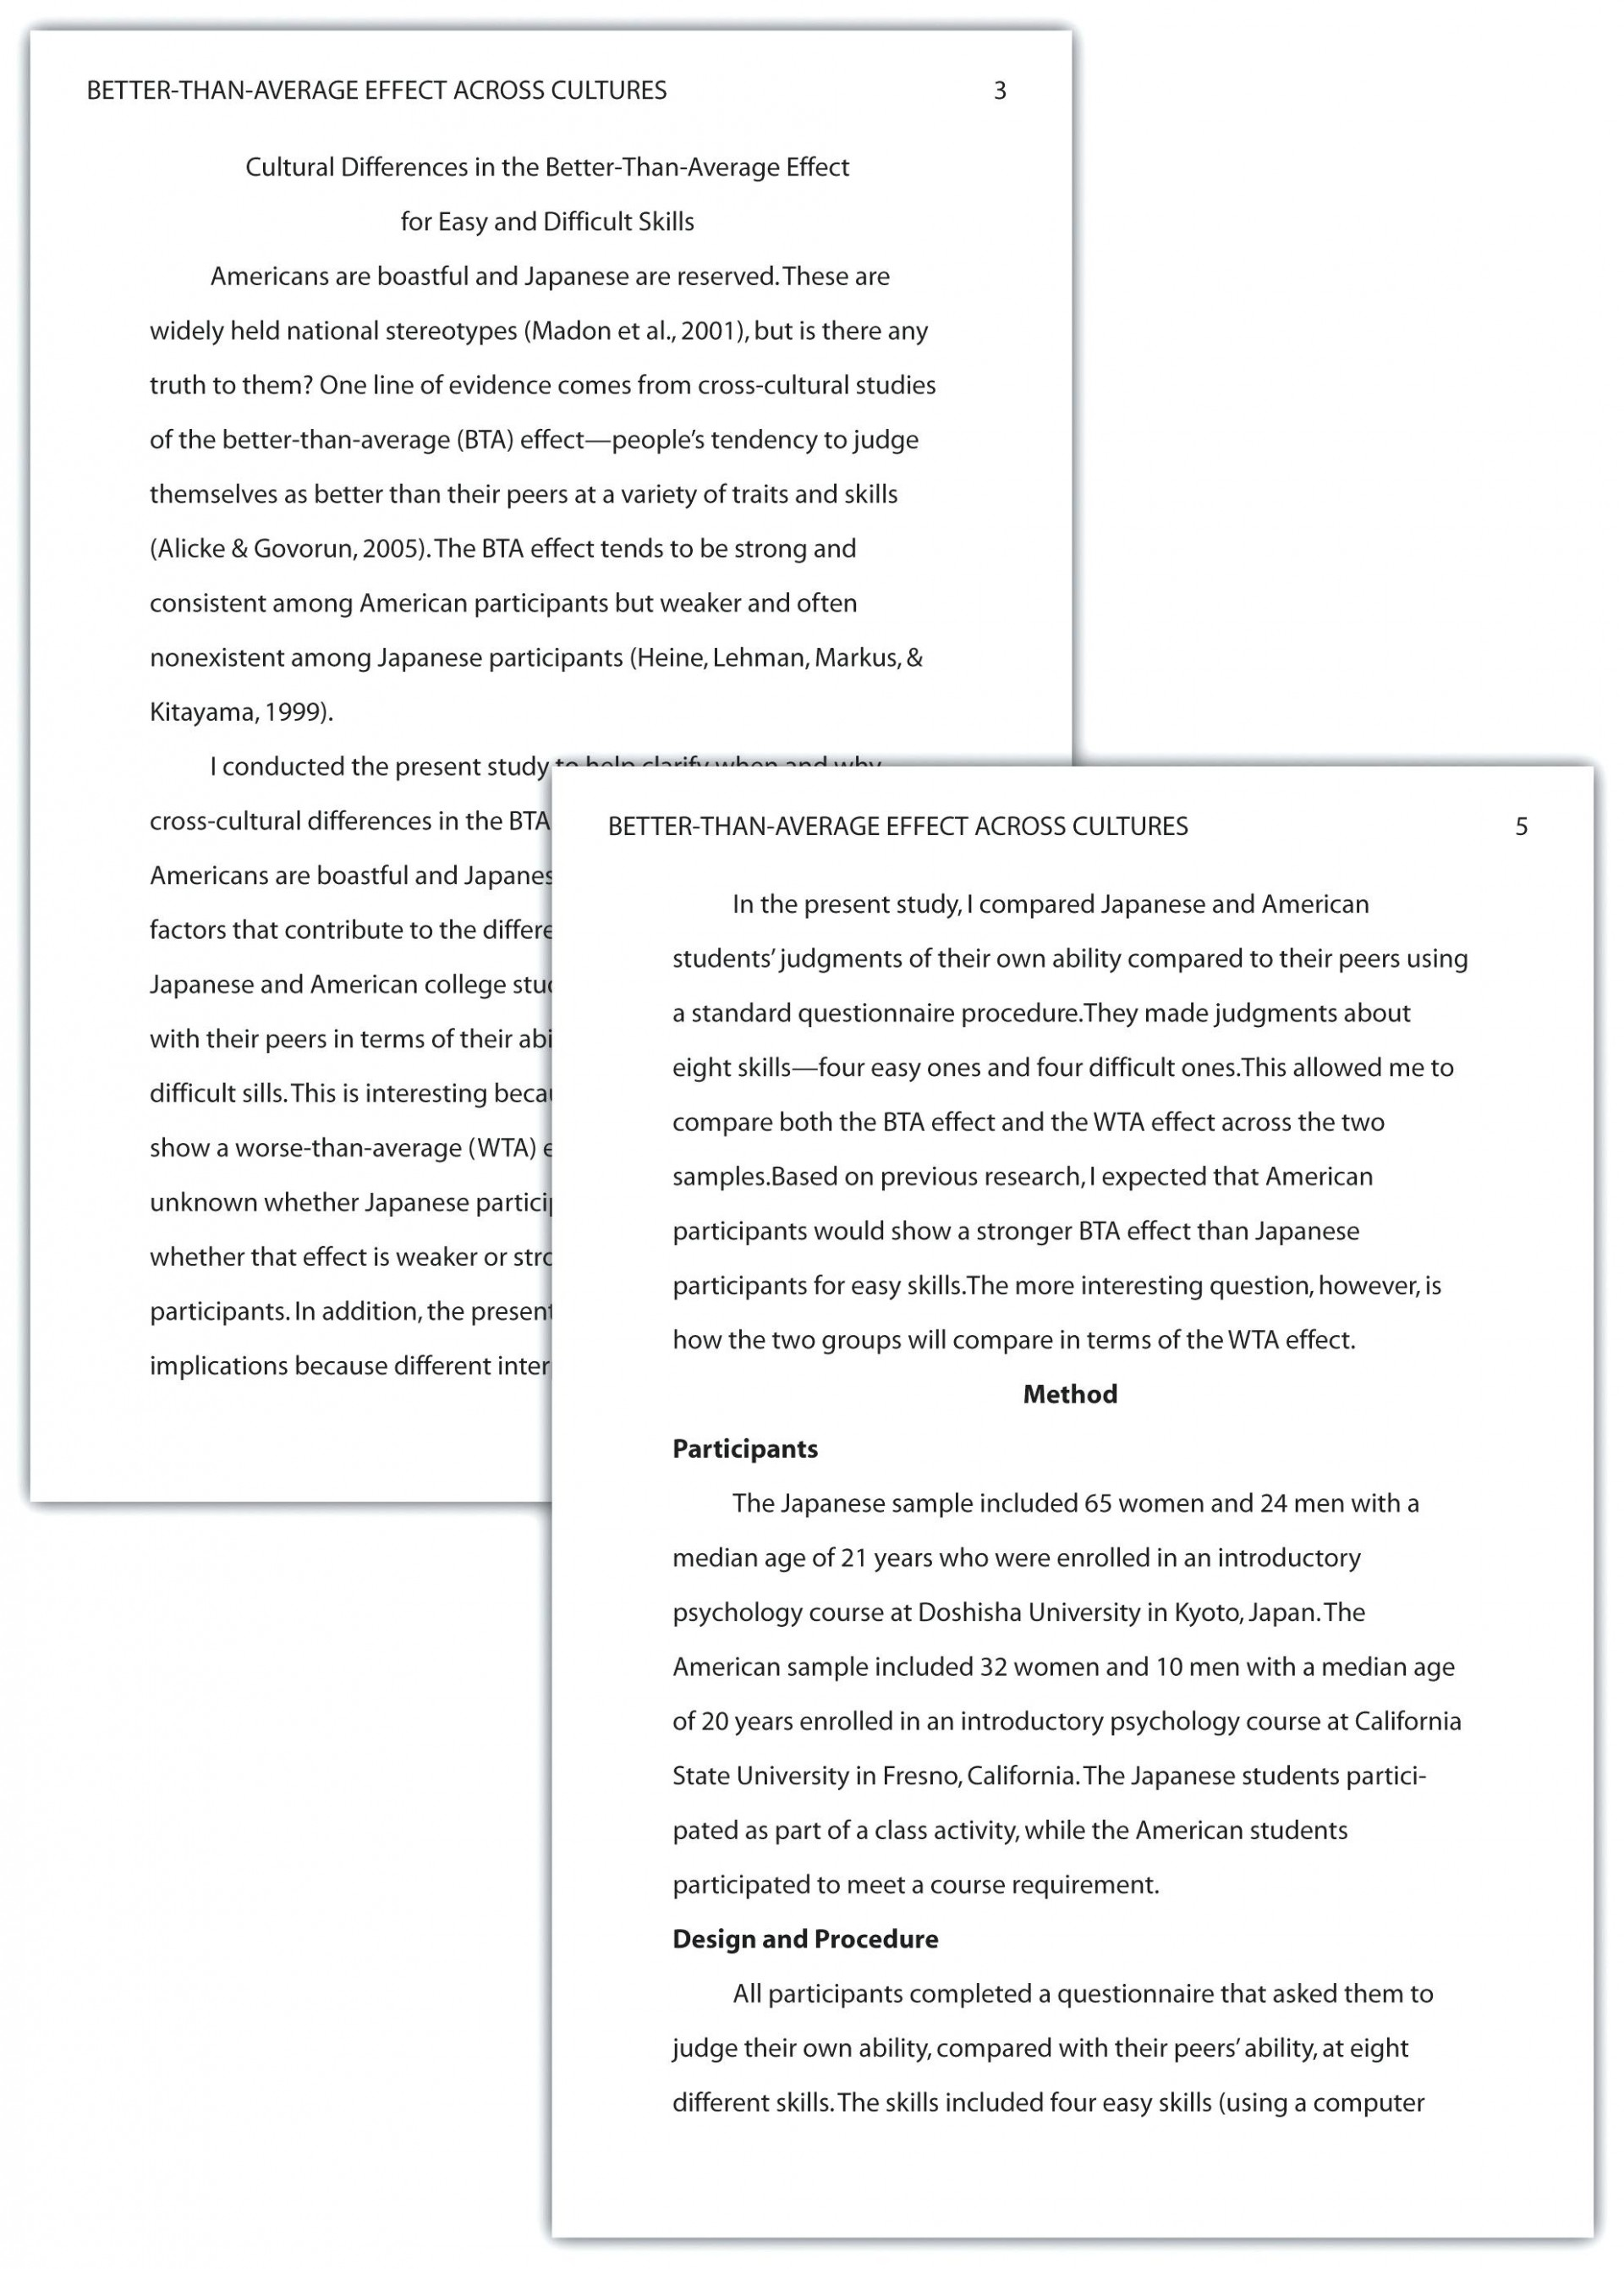 016 Essay Example Asa Paper Format Template Narrative Sample Papers Cause And Effect Also Price Research In Chinese Remarkable Reference Citation Website For Journal Article 1920